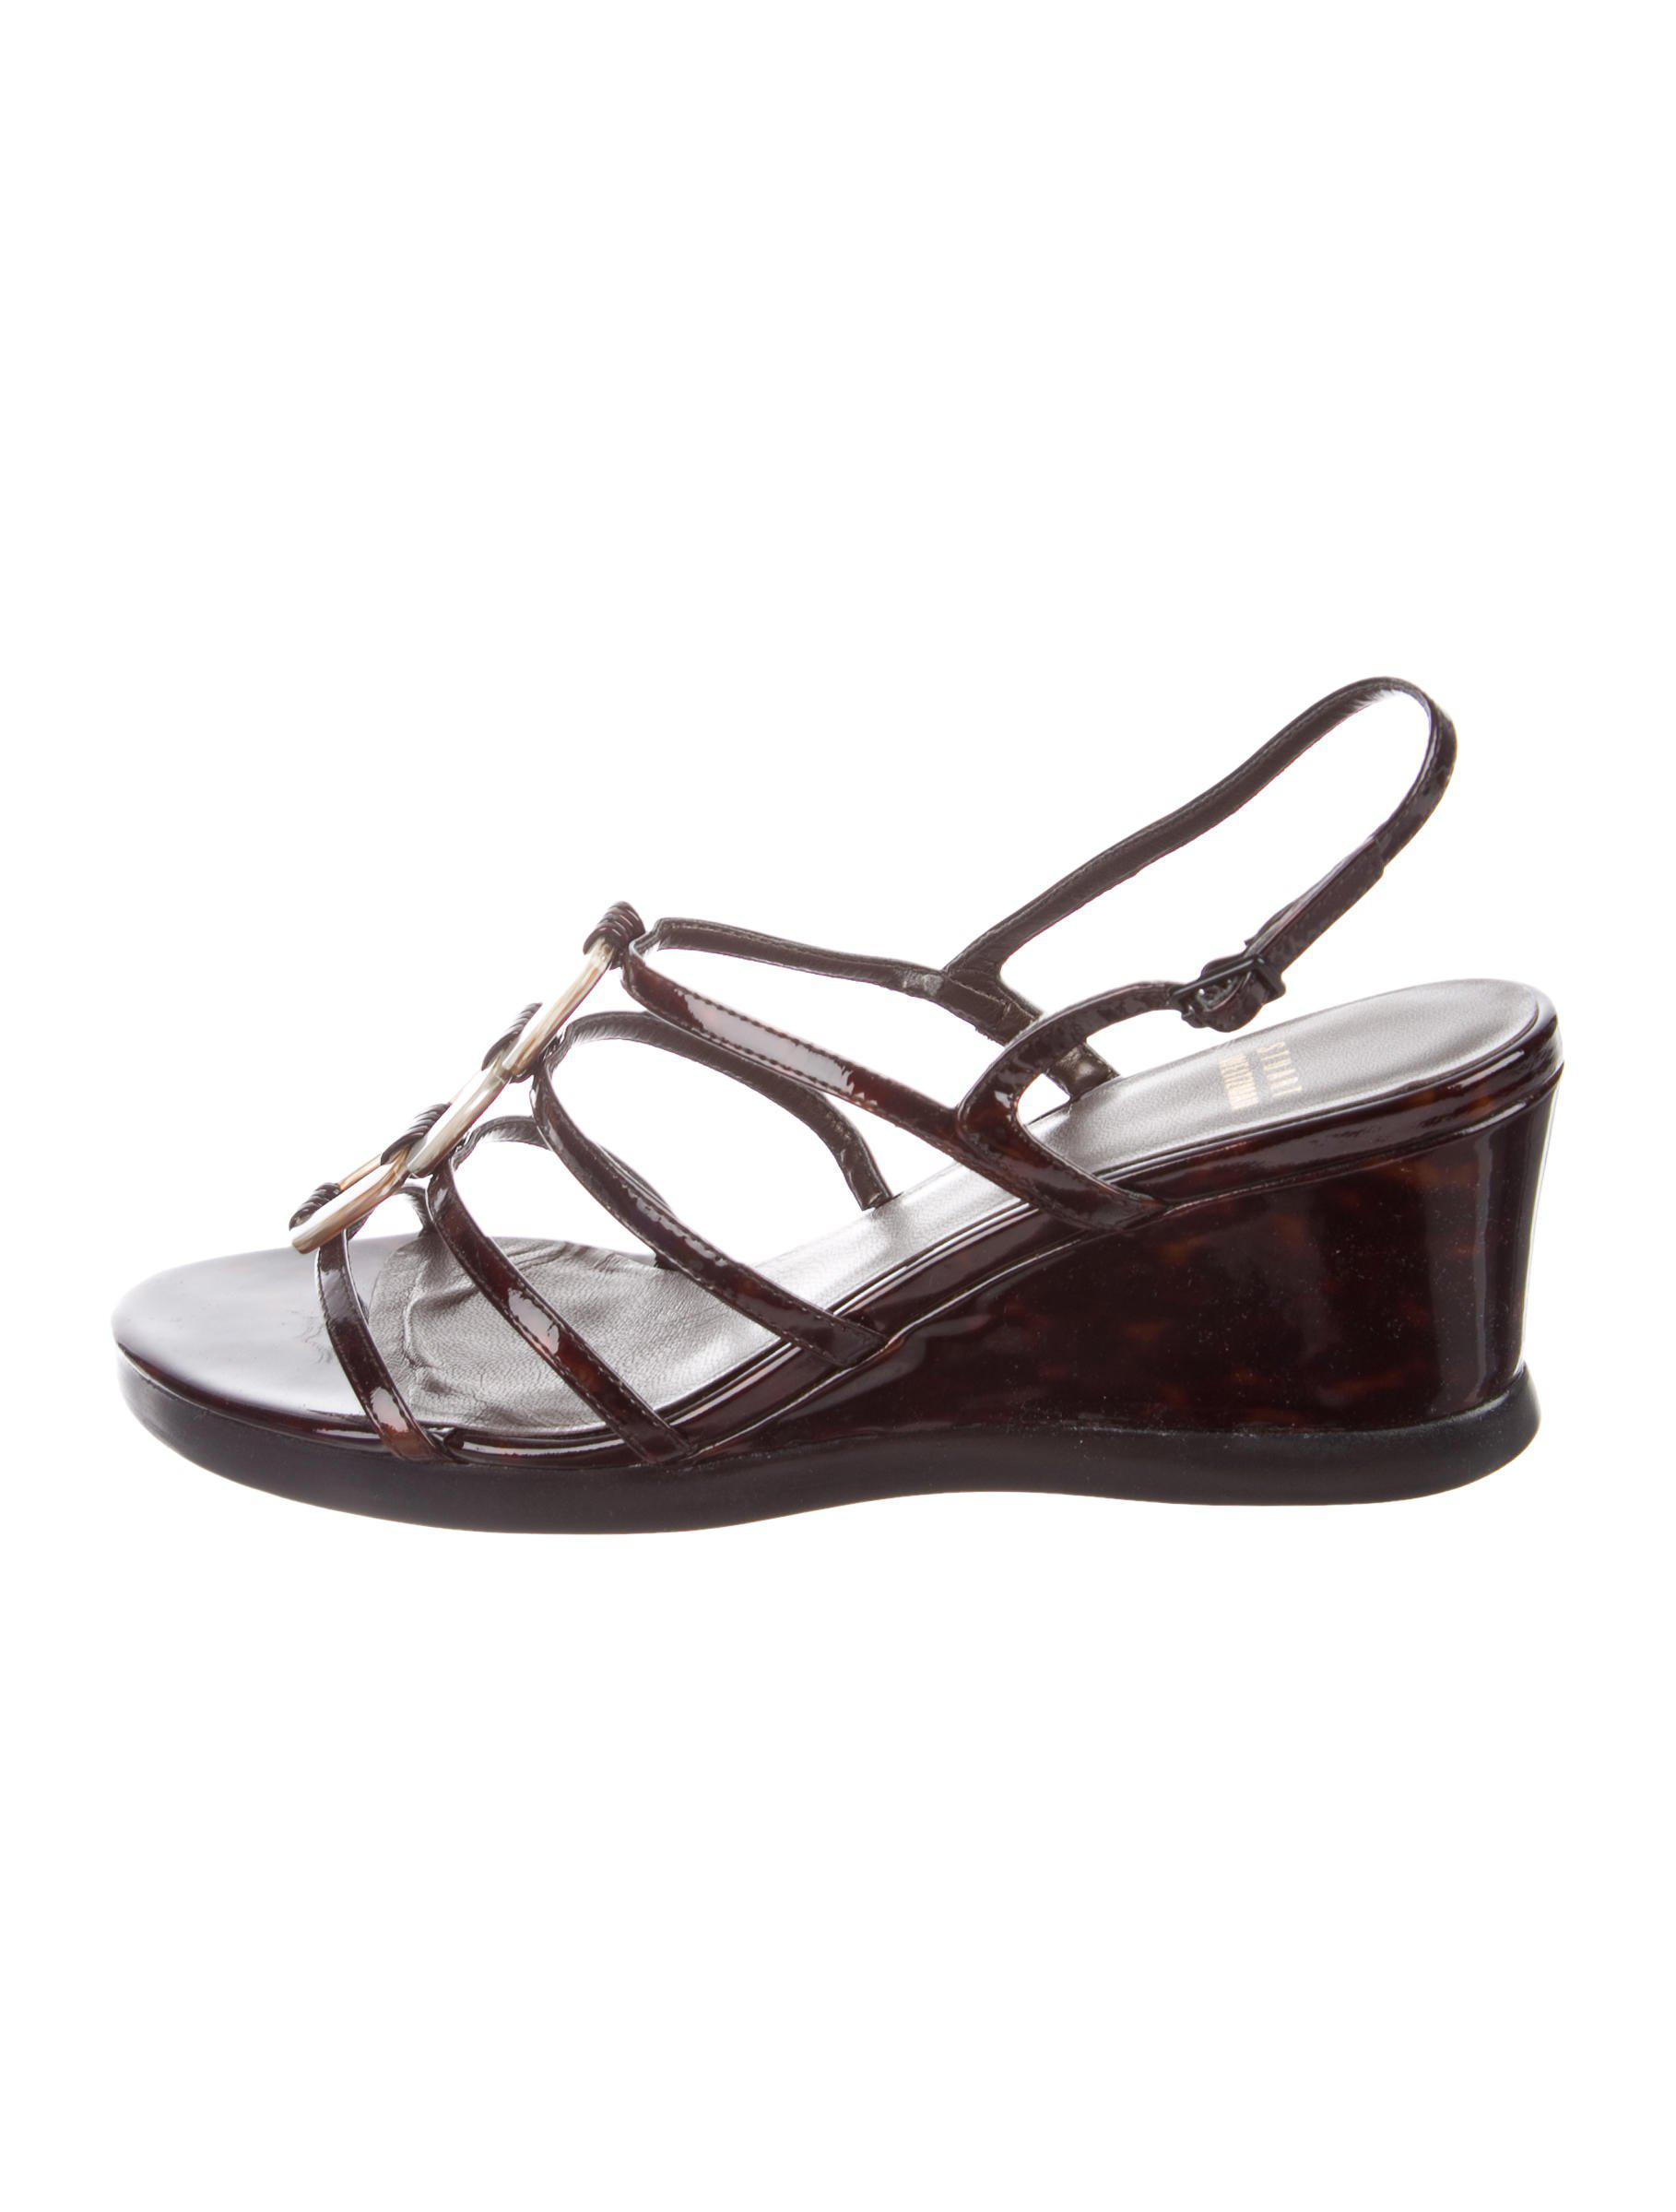 Stuart Weitzman Tortoiseshell Multistrap Wedges largest supplier sale online outlet best wholesale fast delivery cheap price outlet view discount best store to get 4KxURbYA